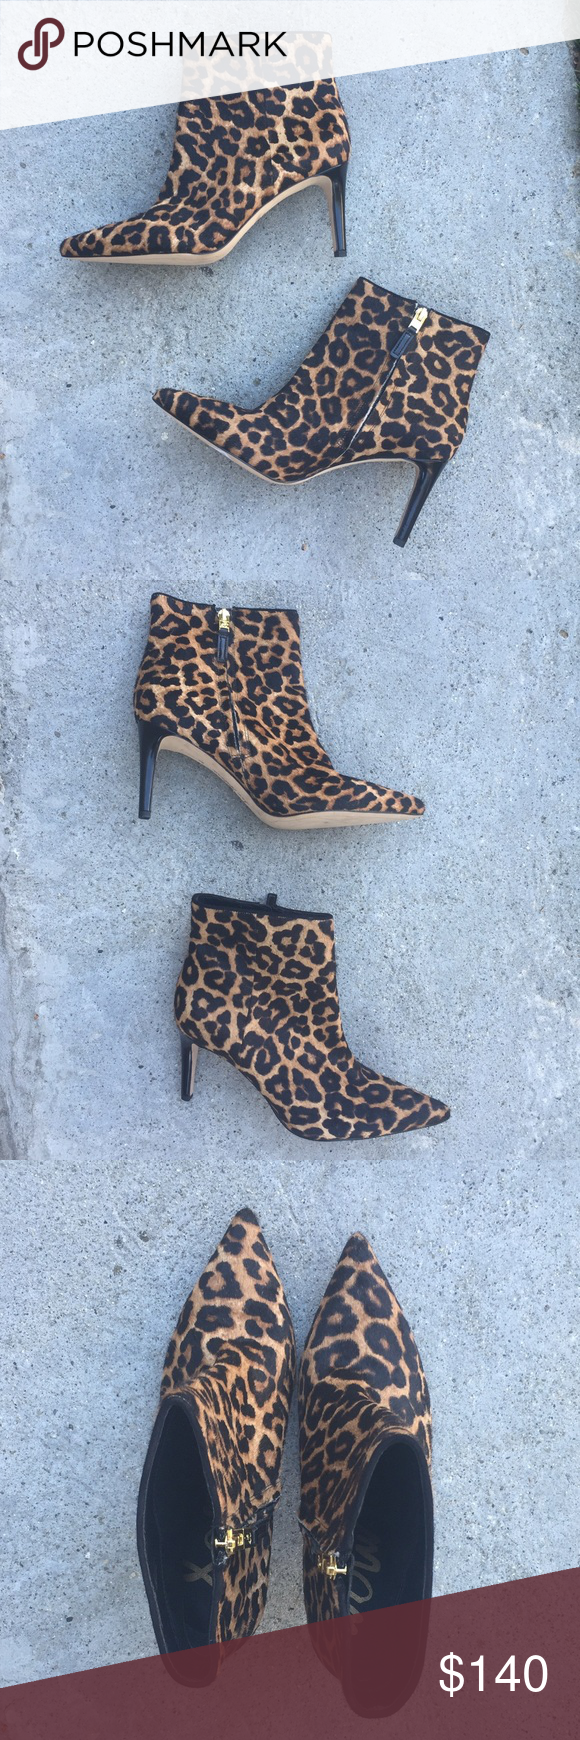 "Sam Edelman pointy toe leopard short heel booties Brand new, super fun pair of pointy toe leopard calf hair booties with hidden inside zippers and a short heel (3.25""). Perfect for the season! Sam Edelman Shoes Ankle Boots & Booties"